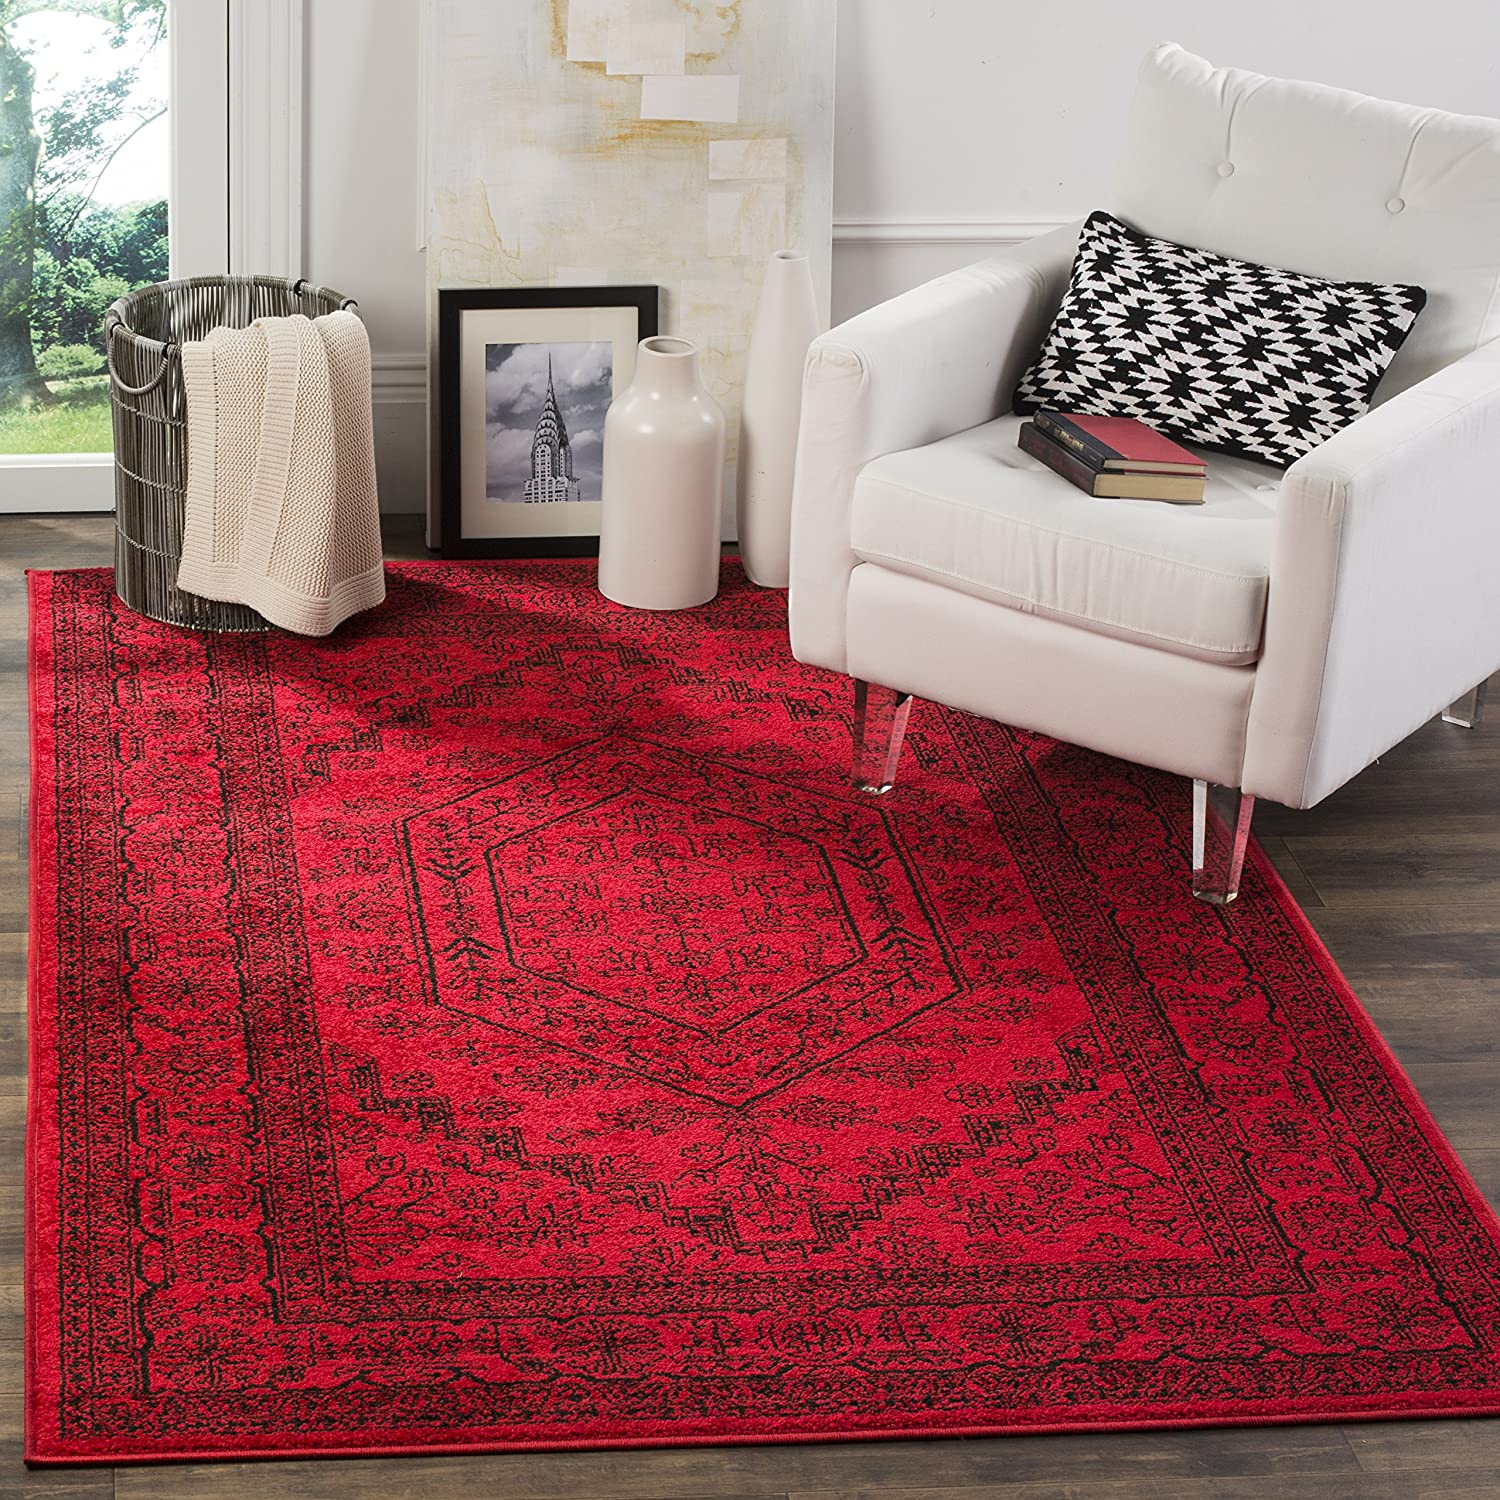 Amazon com safavieh adirondack collection adr108f red and black oriental vintage medallion area rug 8 x 10 kitchen dining